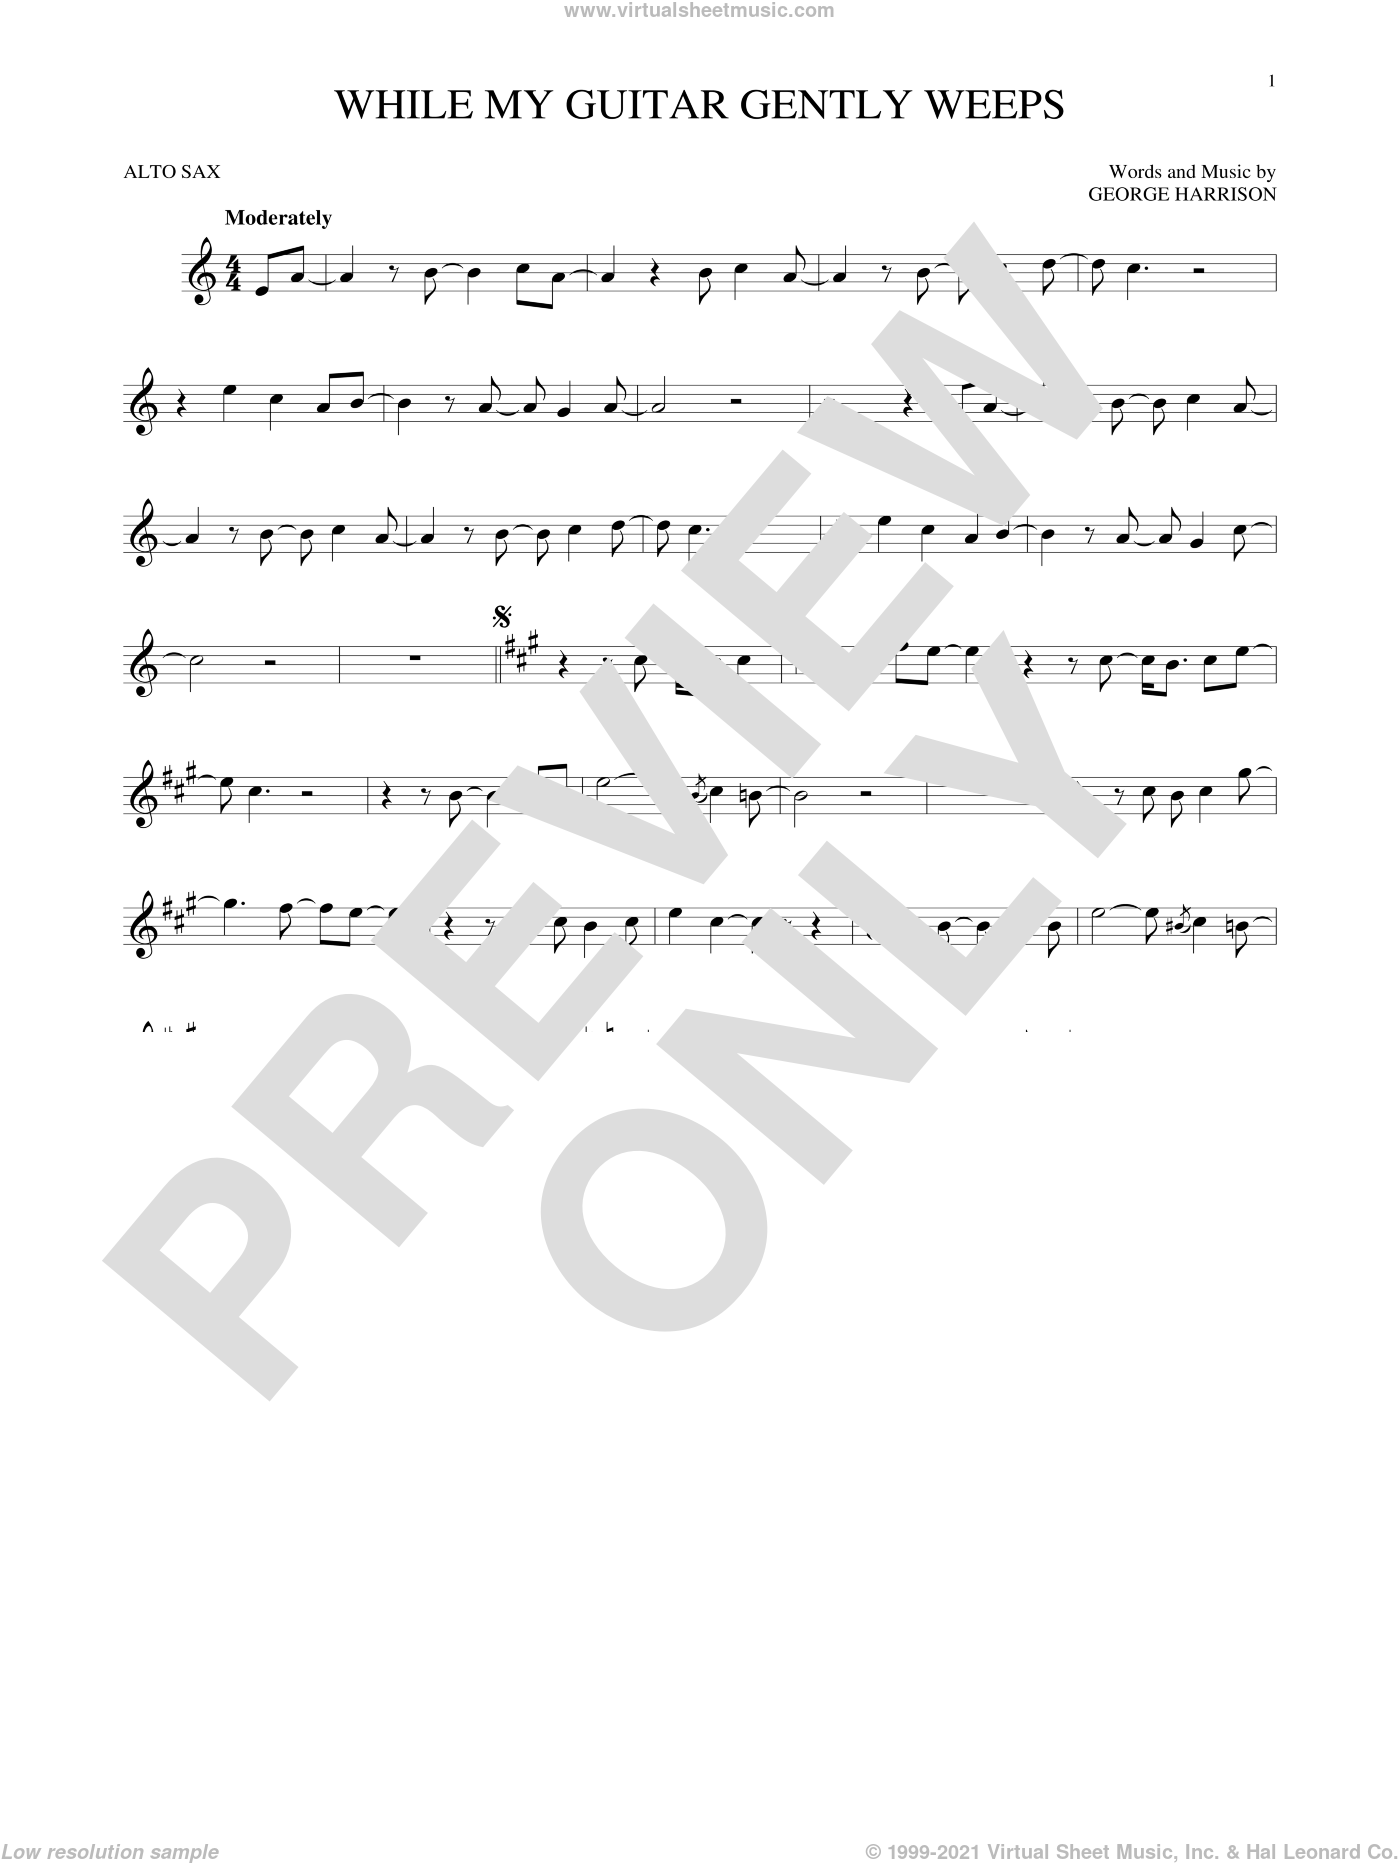 While My Guitar Gently Weeps sheet music for alto saxophone solo by The Beatles. Score Image Preview.